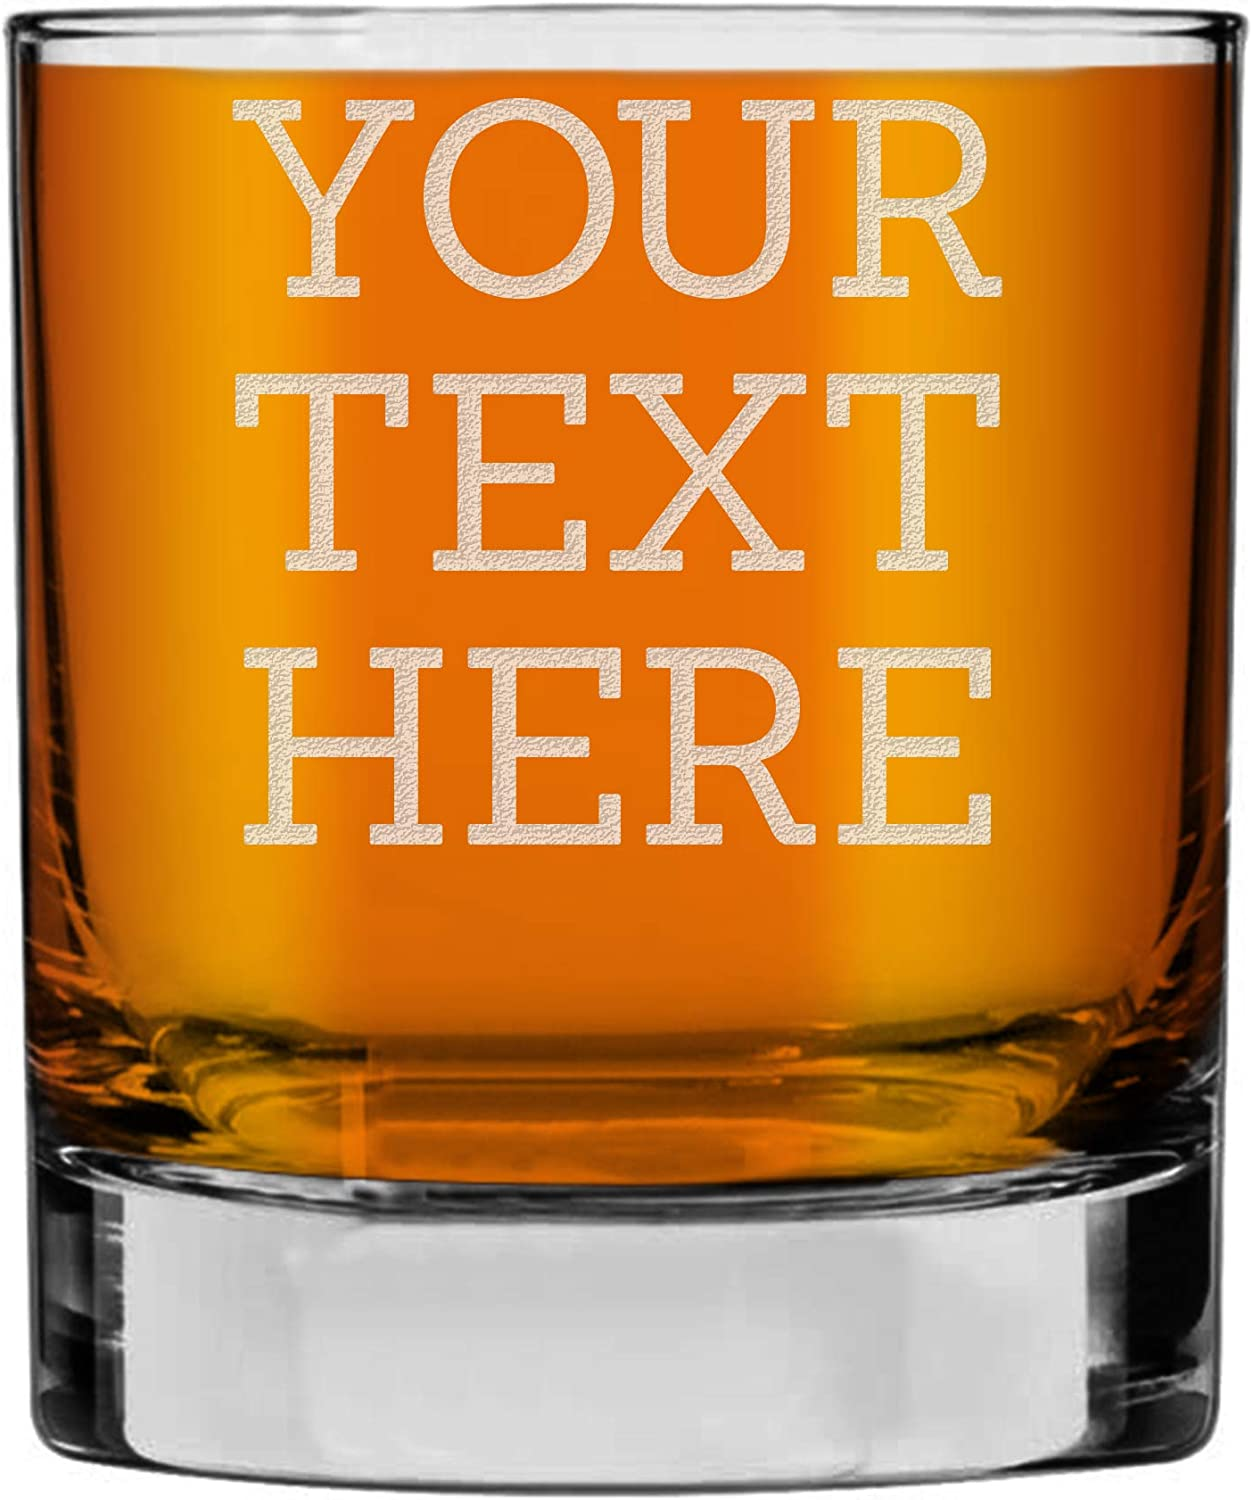 Personalized Etched Custom Message Glass Factory outlet Whiskey Rocks lowest price 10.25oz